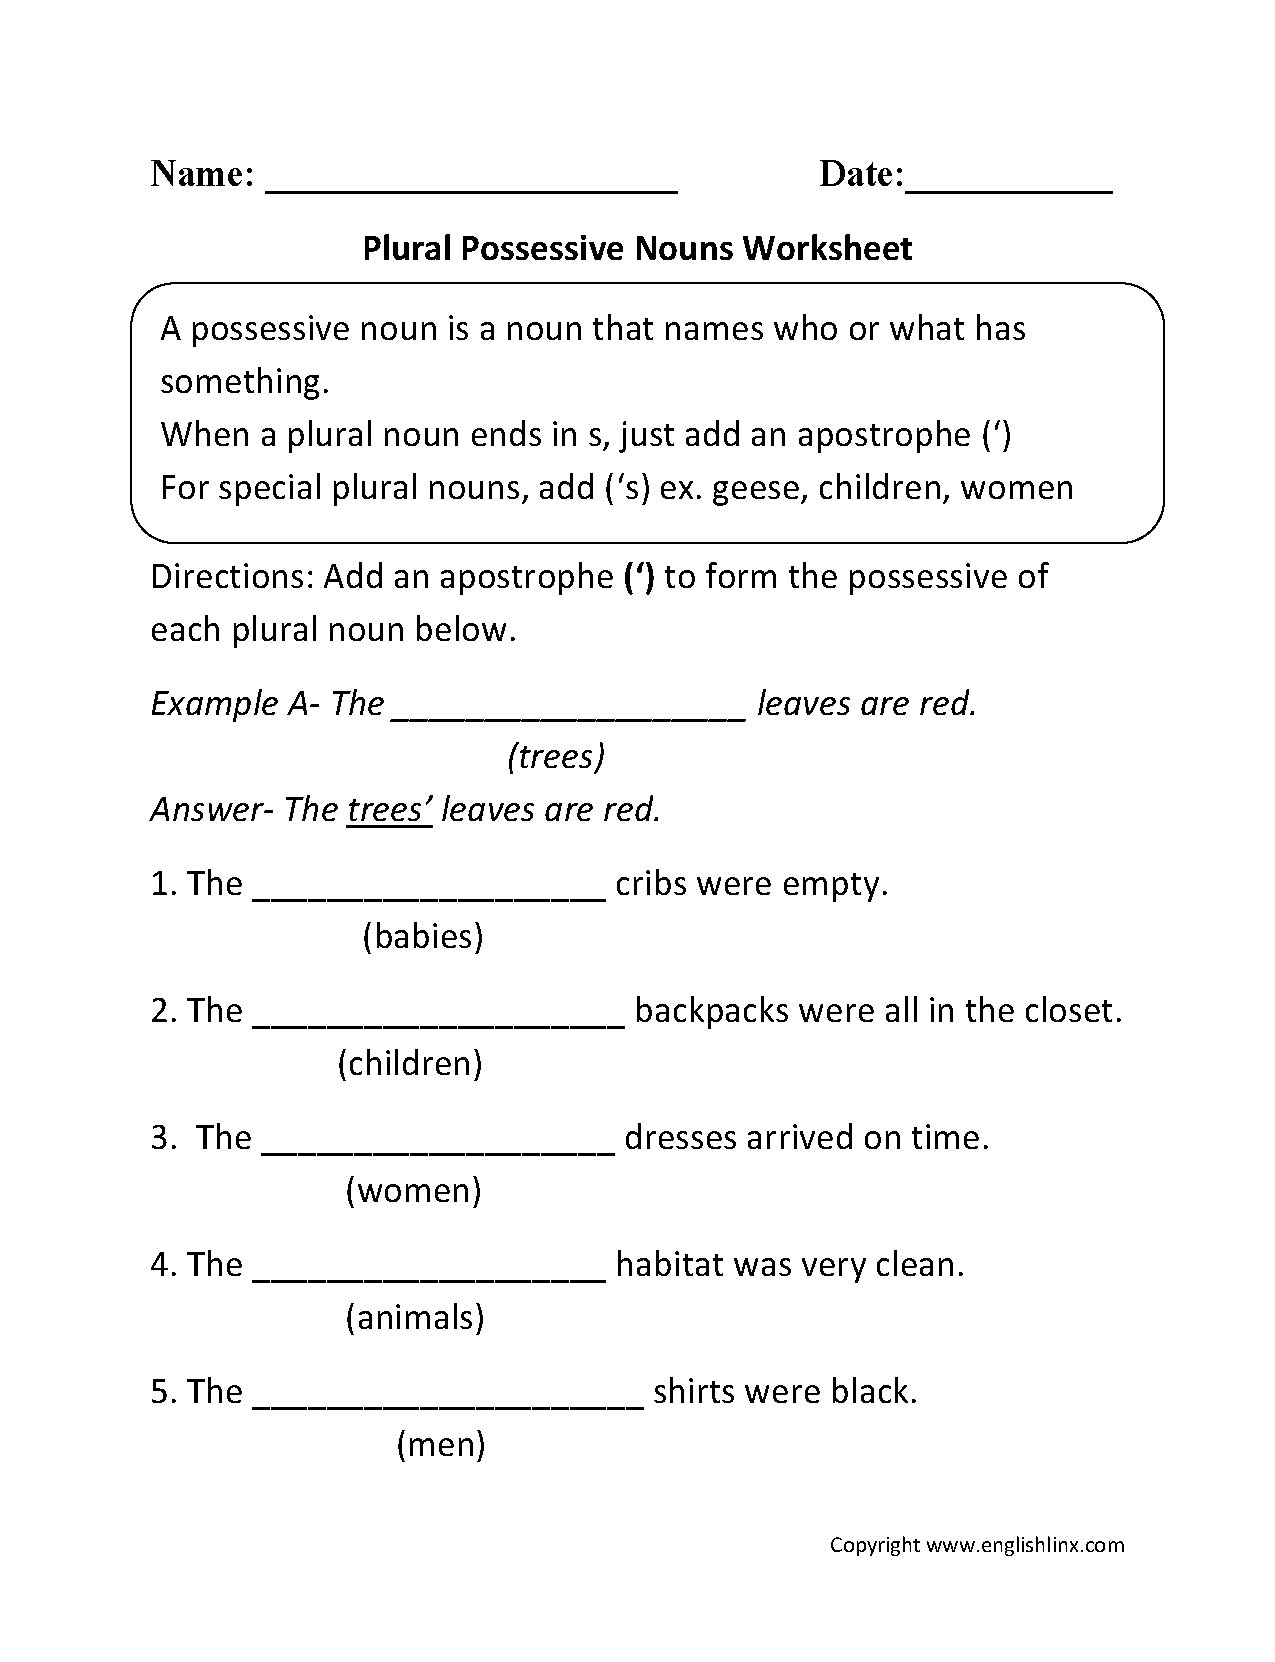 Aldiablosus  Personable Nouns Worksheets  Possessive Nouns Worksheets With Exciting Possessive Nouns Worksheets With Attractive Matching Alphabet Worksheets Also Middle School Math Worksheets Th Grade In Addition Maths Symmetry Worksheets And Straight Line Worksheet As Well As Bar Charts Worksheets Additionally Scientific Worksheet From Englishlinxcom With Aldiablosus  Exciting Nouns Worksheets  Possessive Nouns Worksheets With Attractive Possessive Nouns Worksheets And Personable Matching Alphabet Worksheets Also Middle School Math Worksheets Th Grade In Addition Maths Symmetry Worksheets From Englishlinxcom